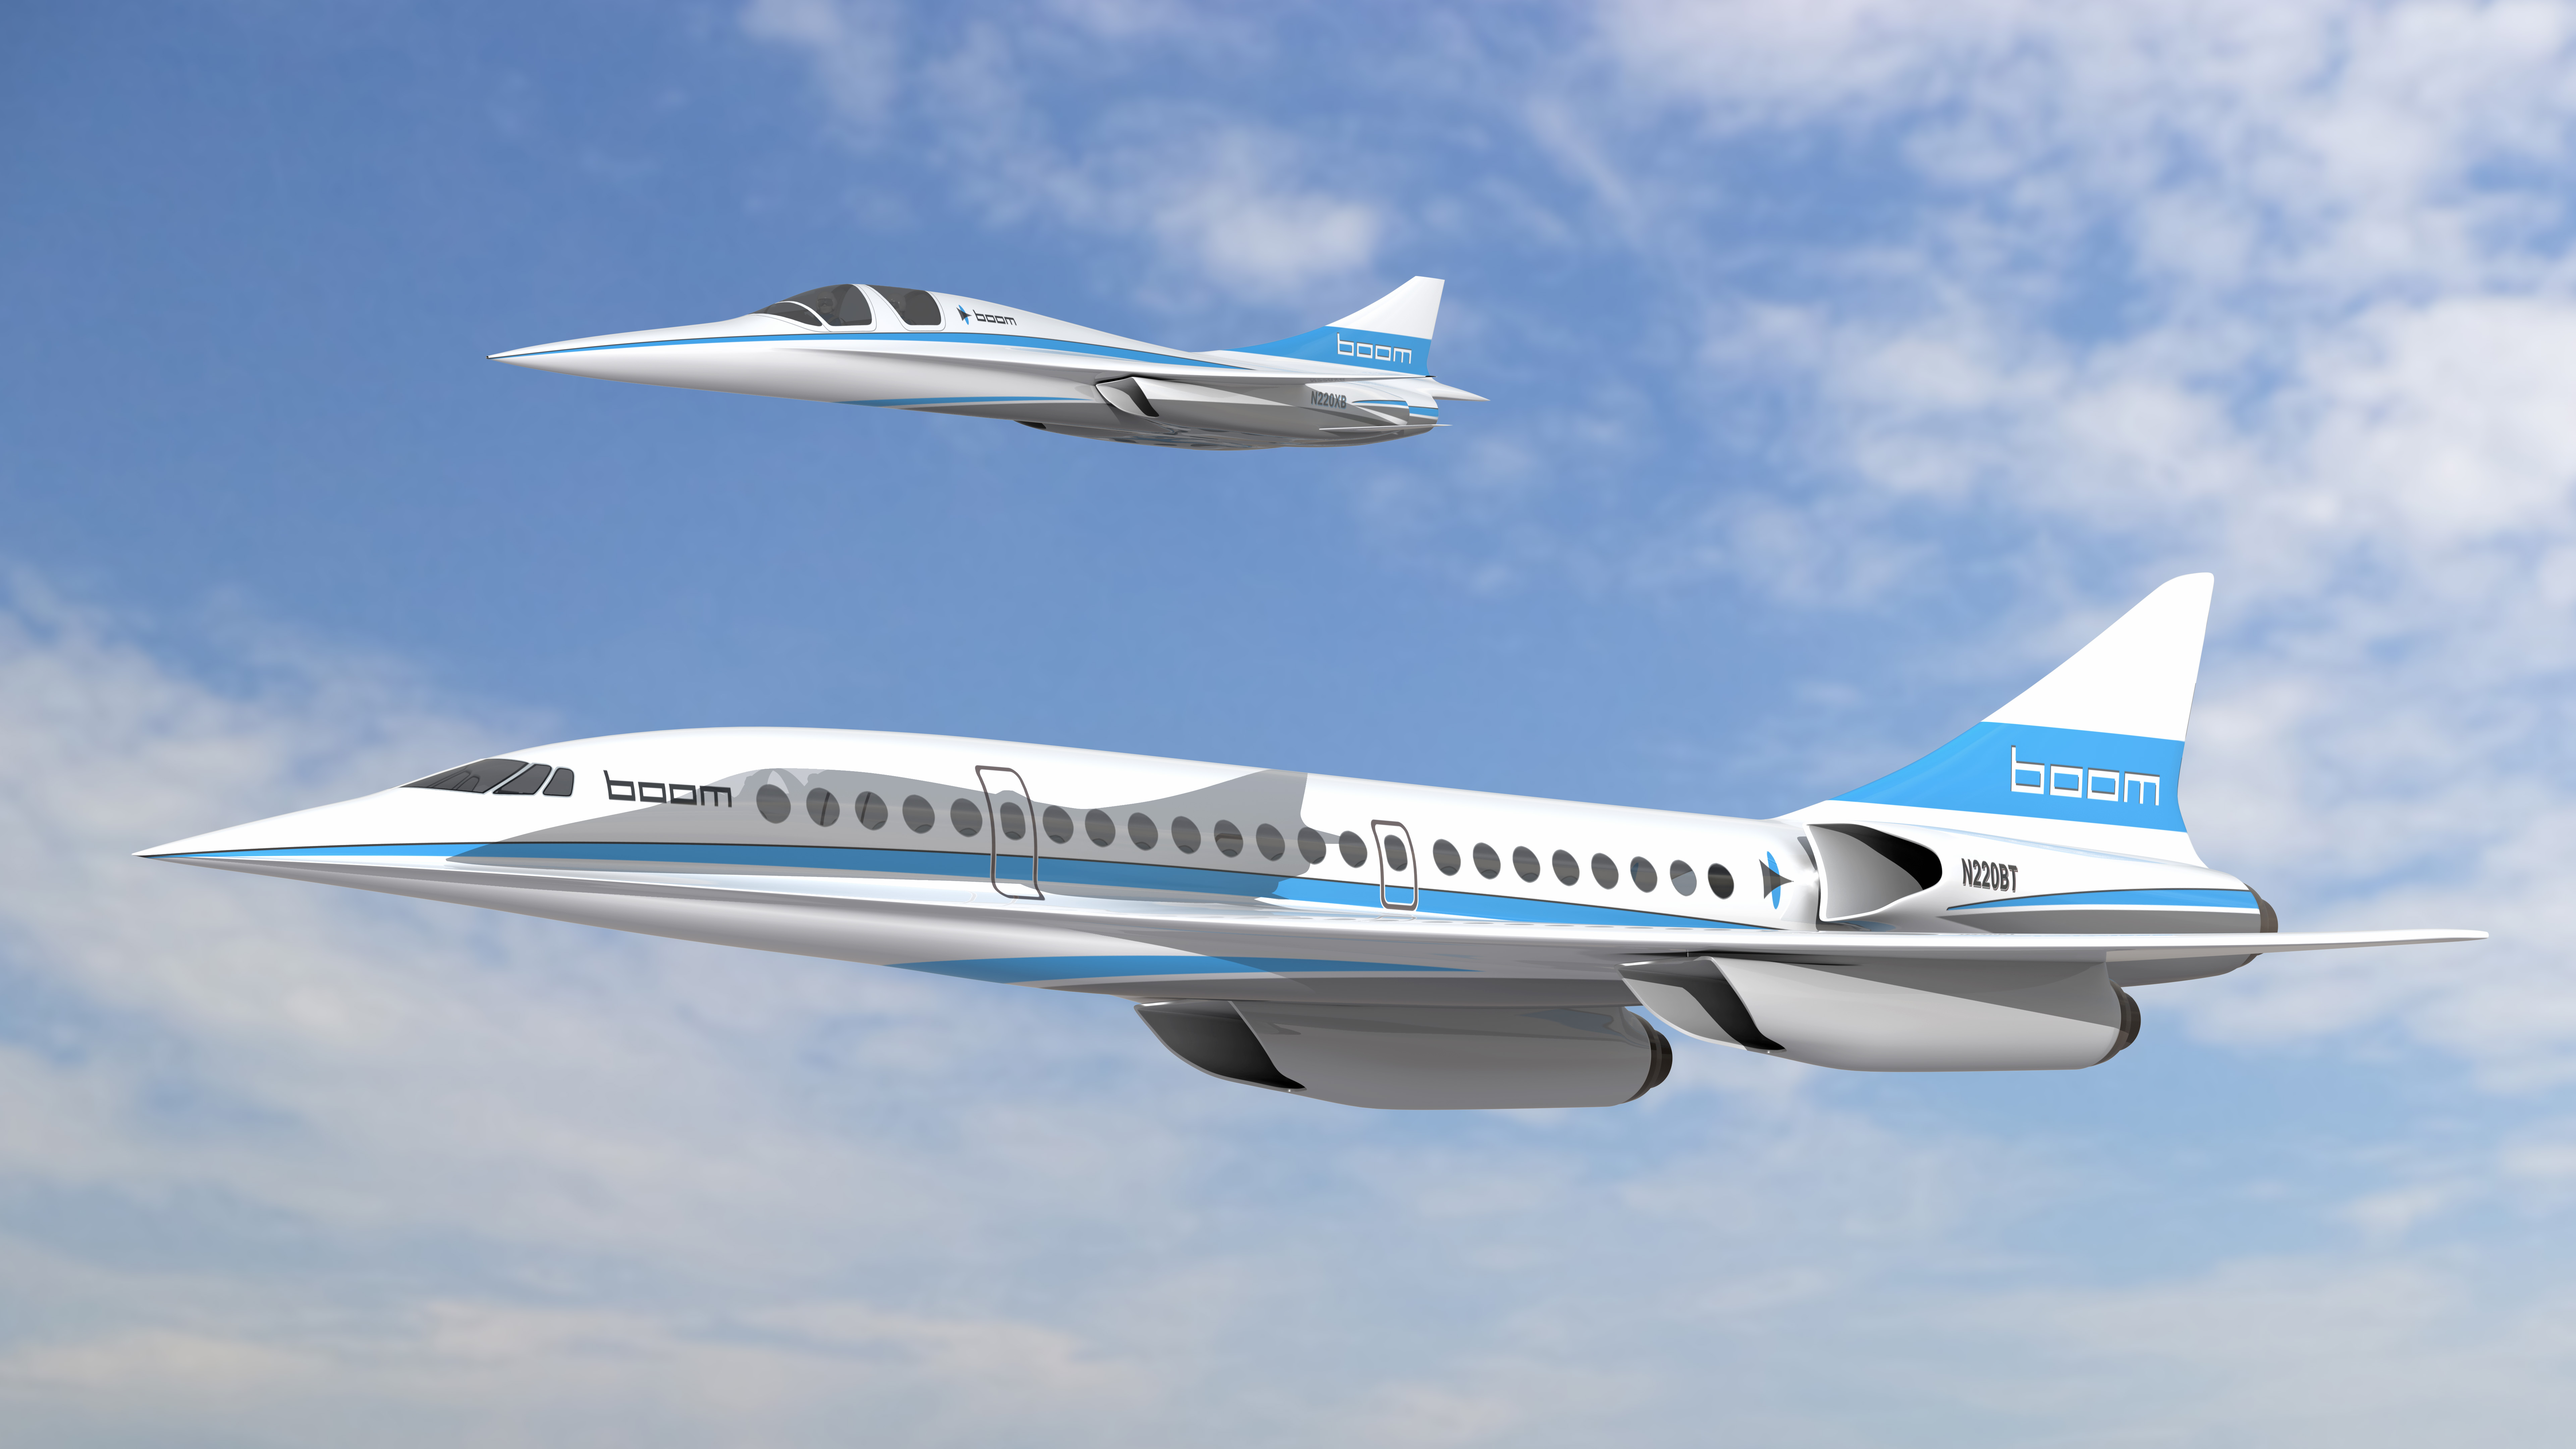 Super jet, Supersonic Demonstrator, to speed up air travel